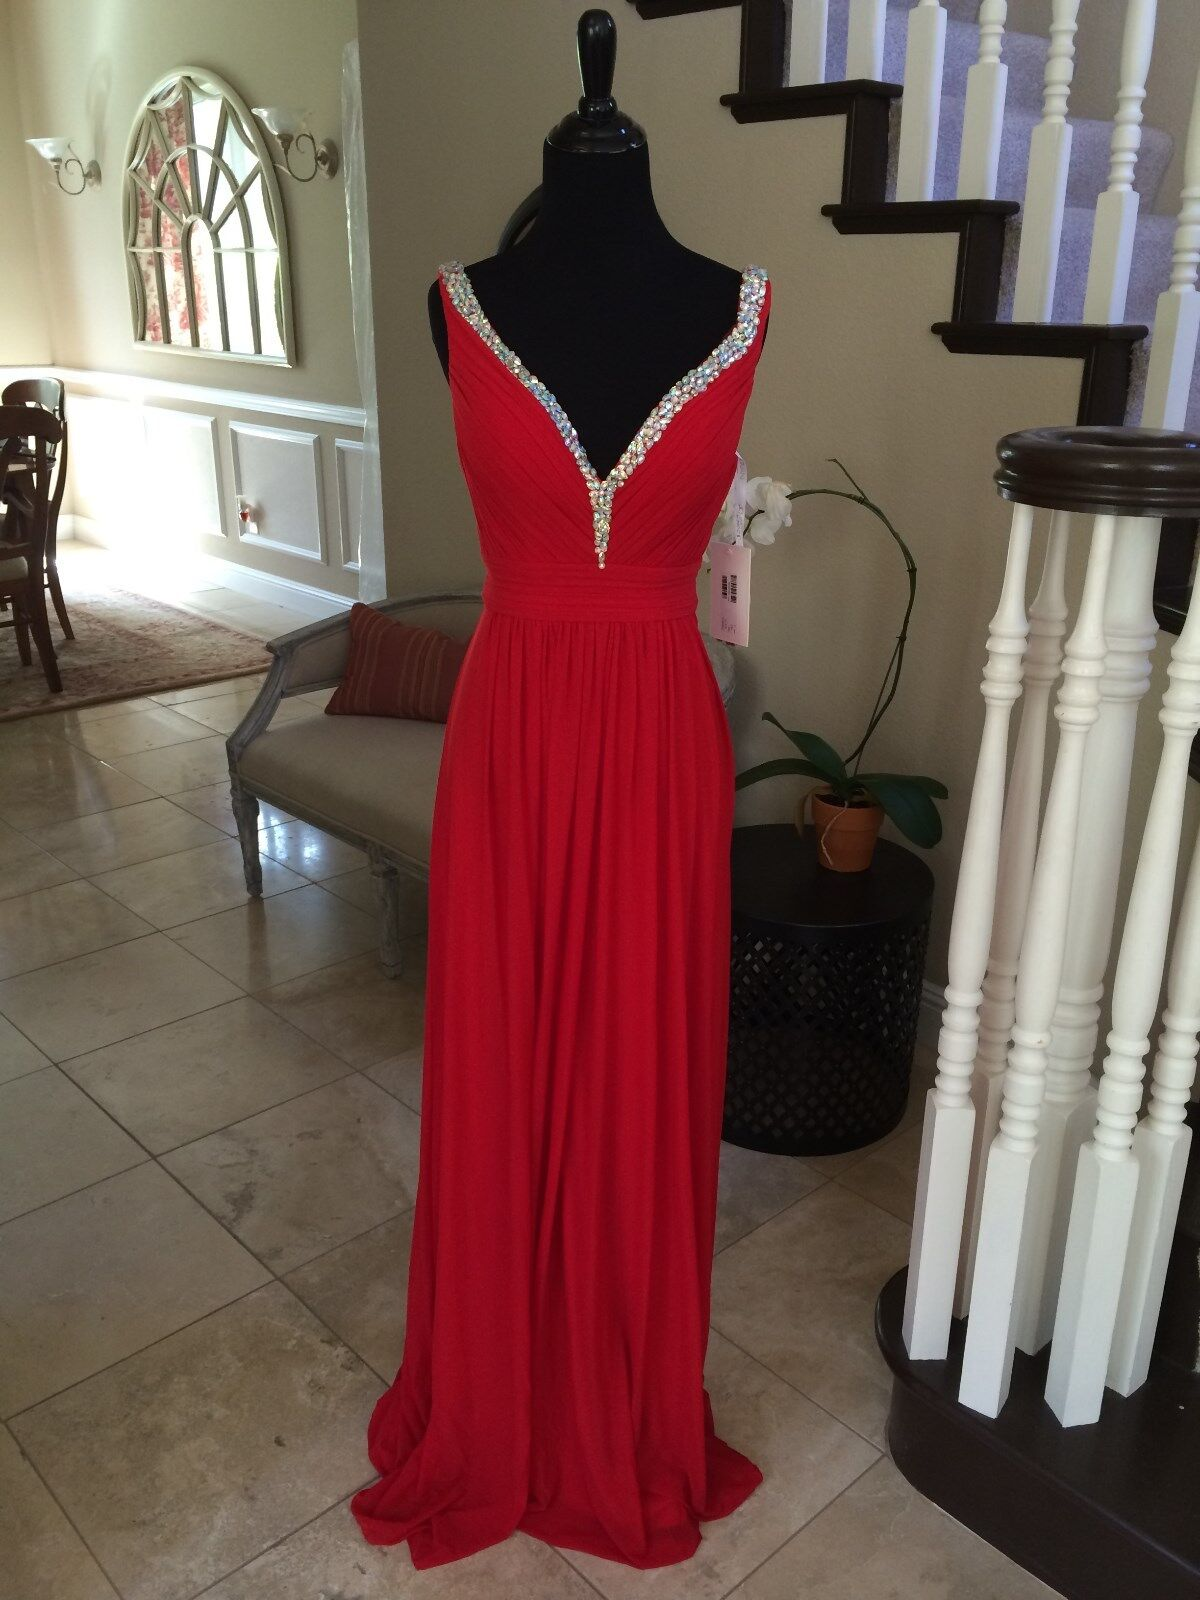 NWT JVN BY JOVANI RED PROM PAGEANT FORMAL DRESS GOWN SIZE 2